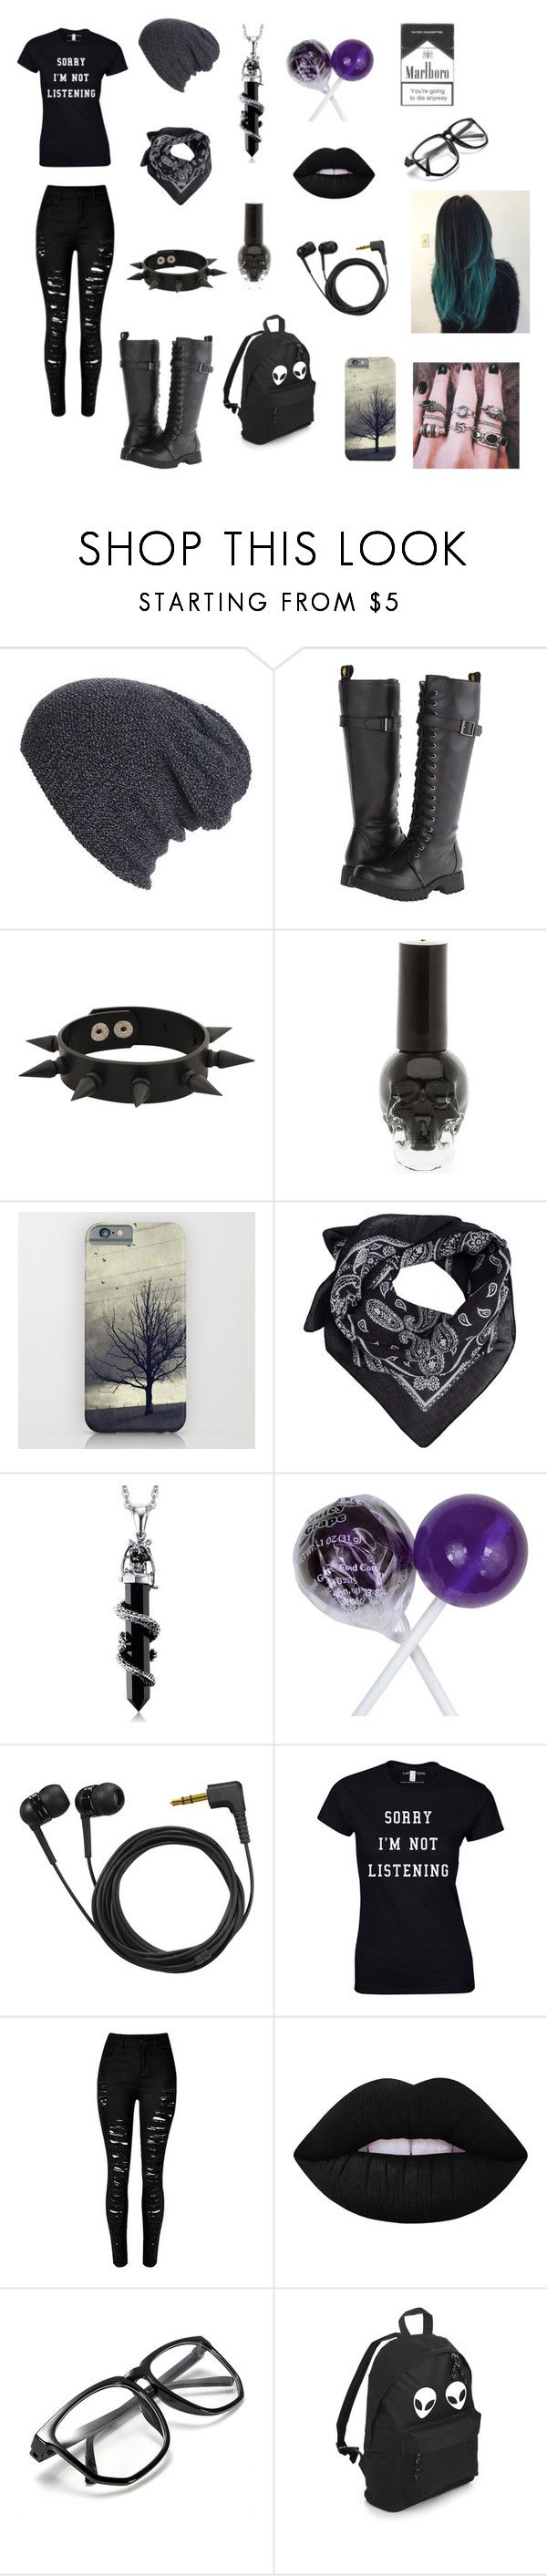 """""""I will love you soon, but not now"""" by ja-ja-ja ❤ liked on Polyvore featuring WithChic, Volatile, Forever 21, Hot Topic, MANGO, Shop Dixi, Sennheiser and Lime Crime"""